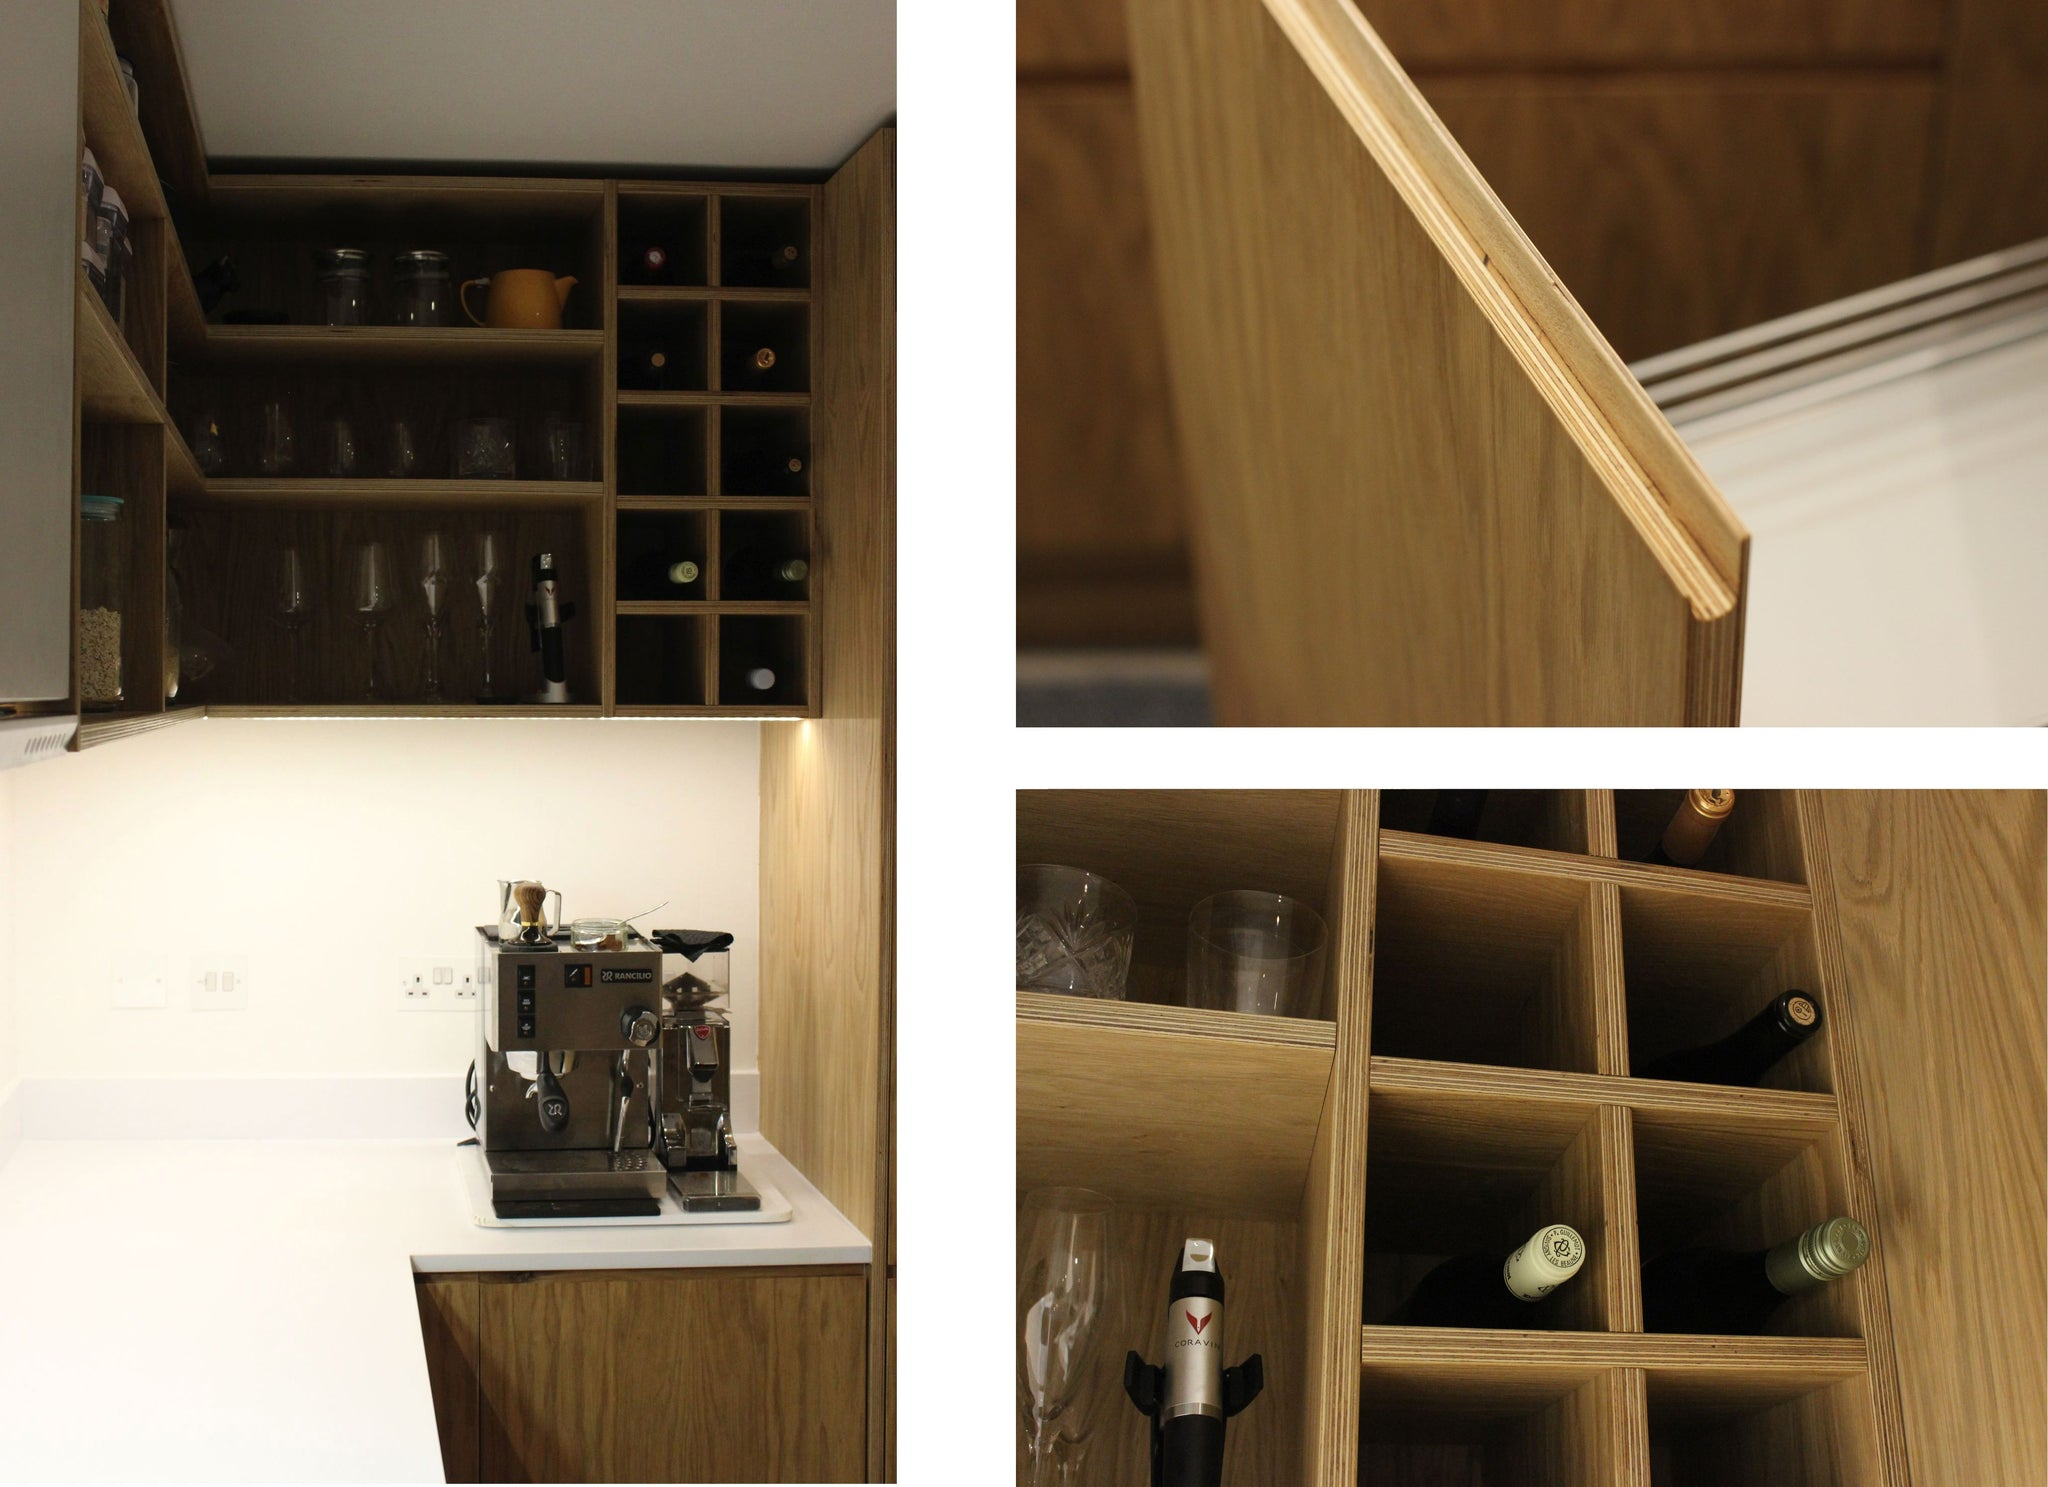 Bespoke oak shelving unit made by Jon Grant London in East London.